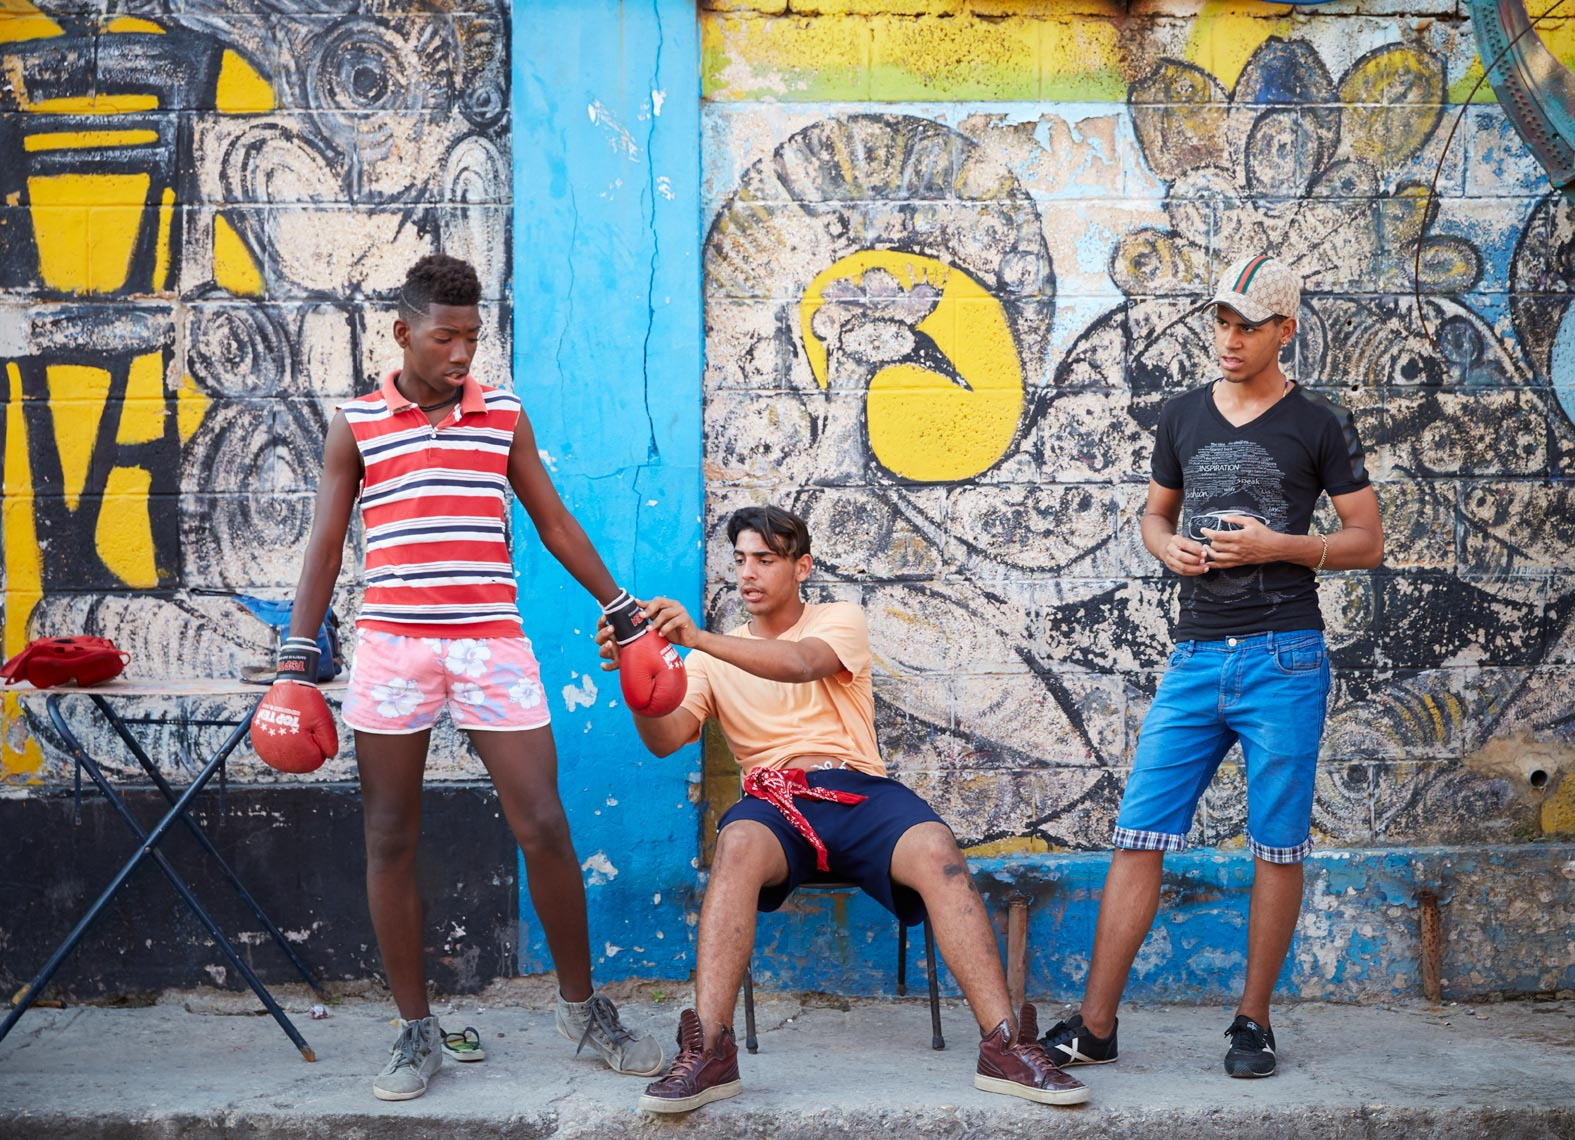 3 young boys practicing boxing in front of an art-deco wall in Cuba